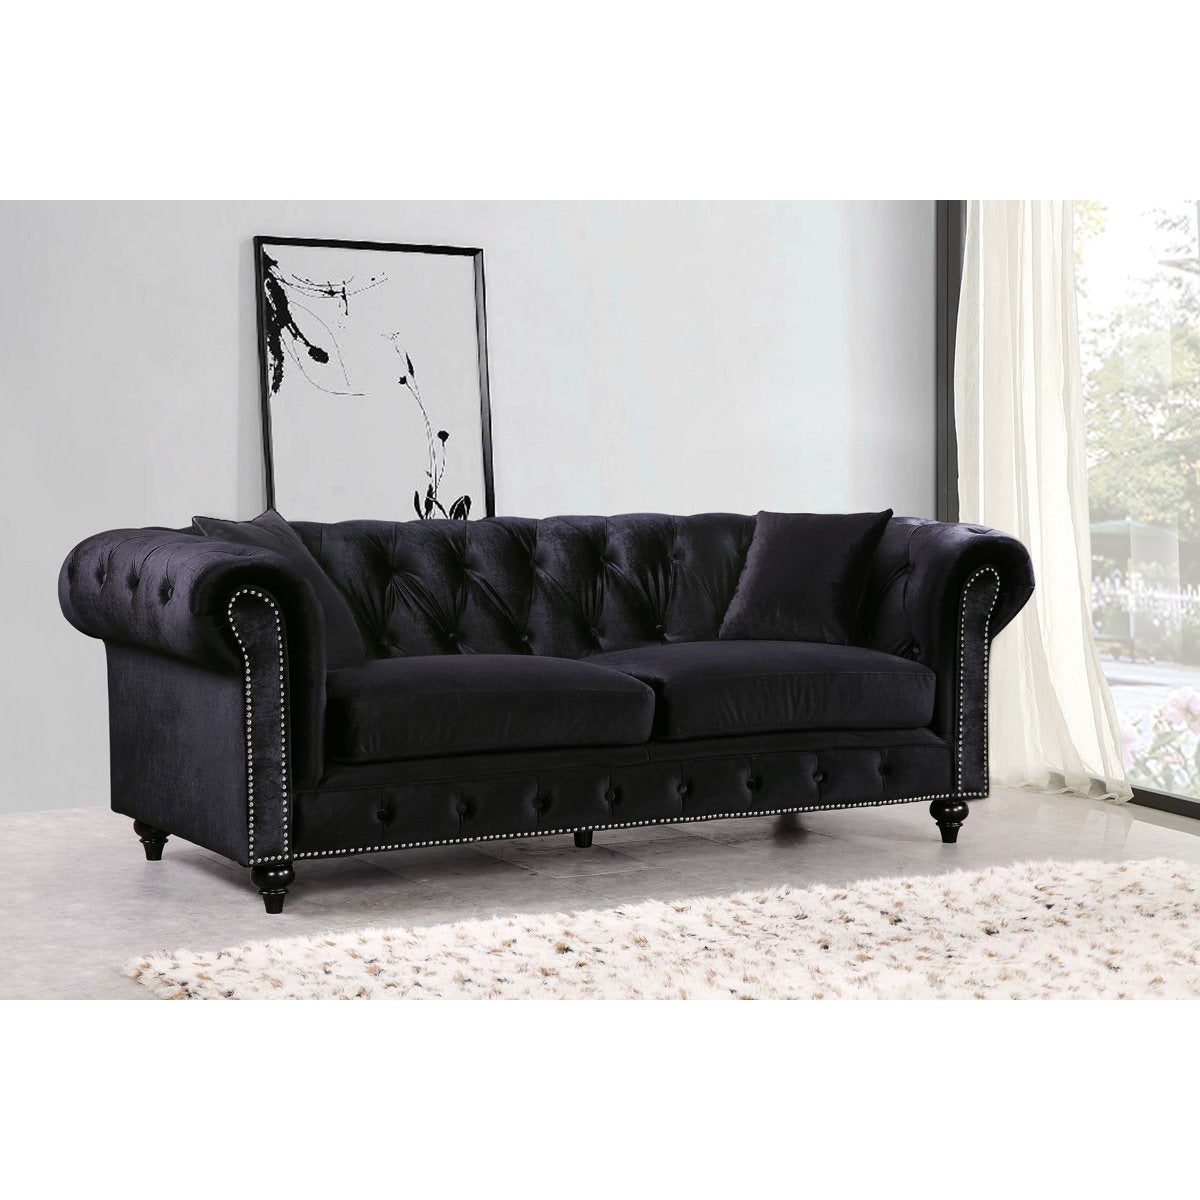 Meridian Furniture Chesterfield Black Velvet Sofa Minimal U0026 Modern ...